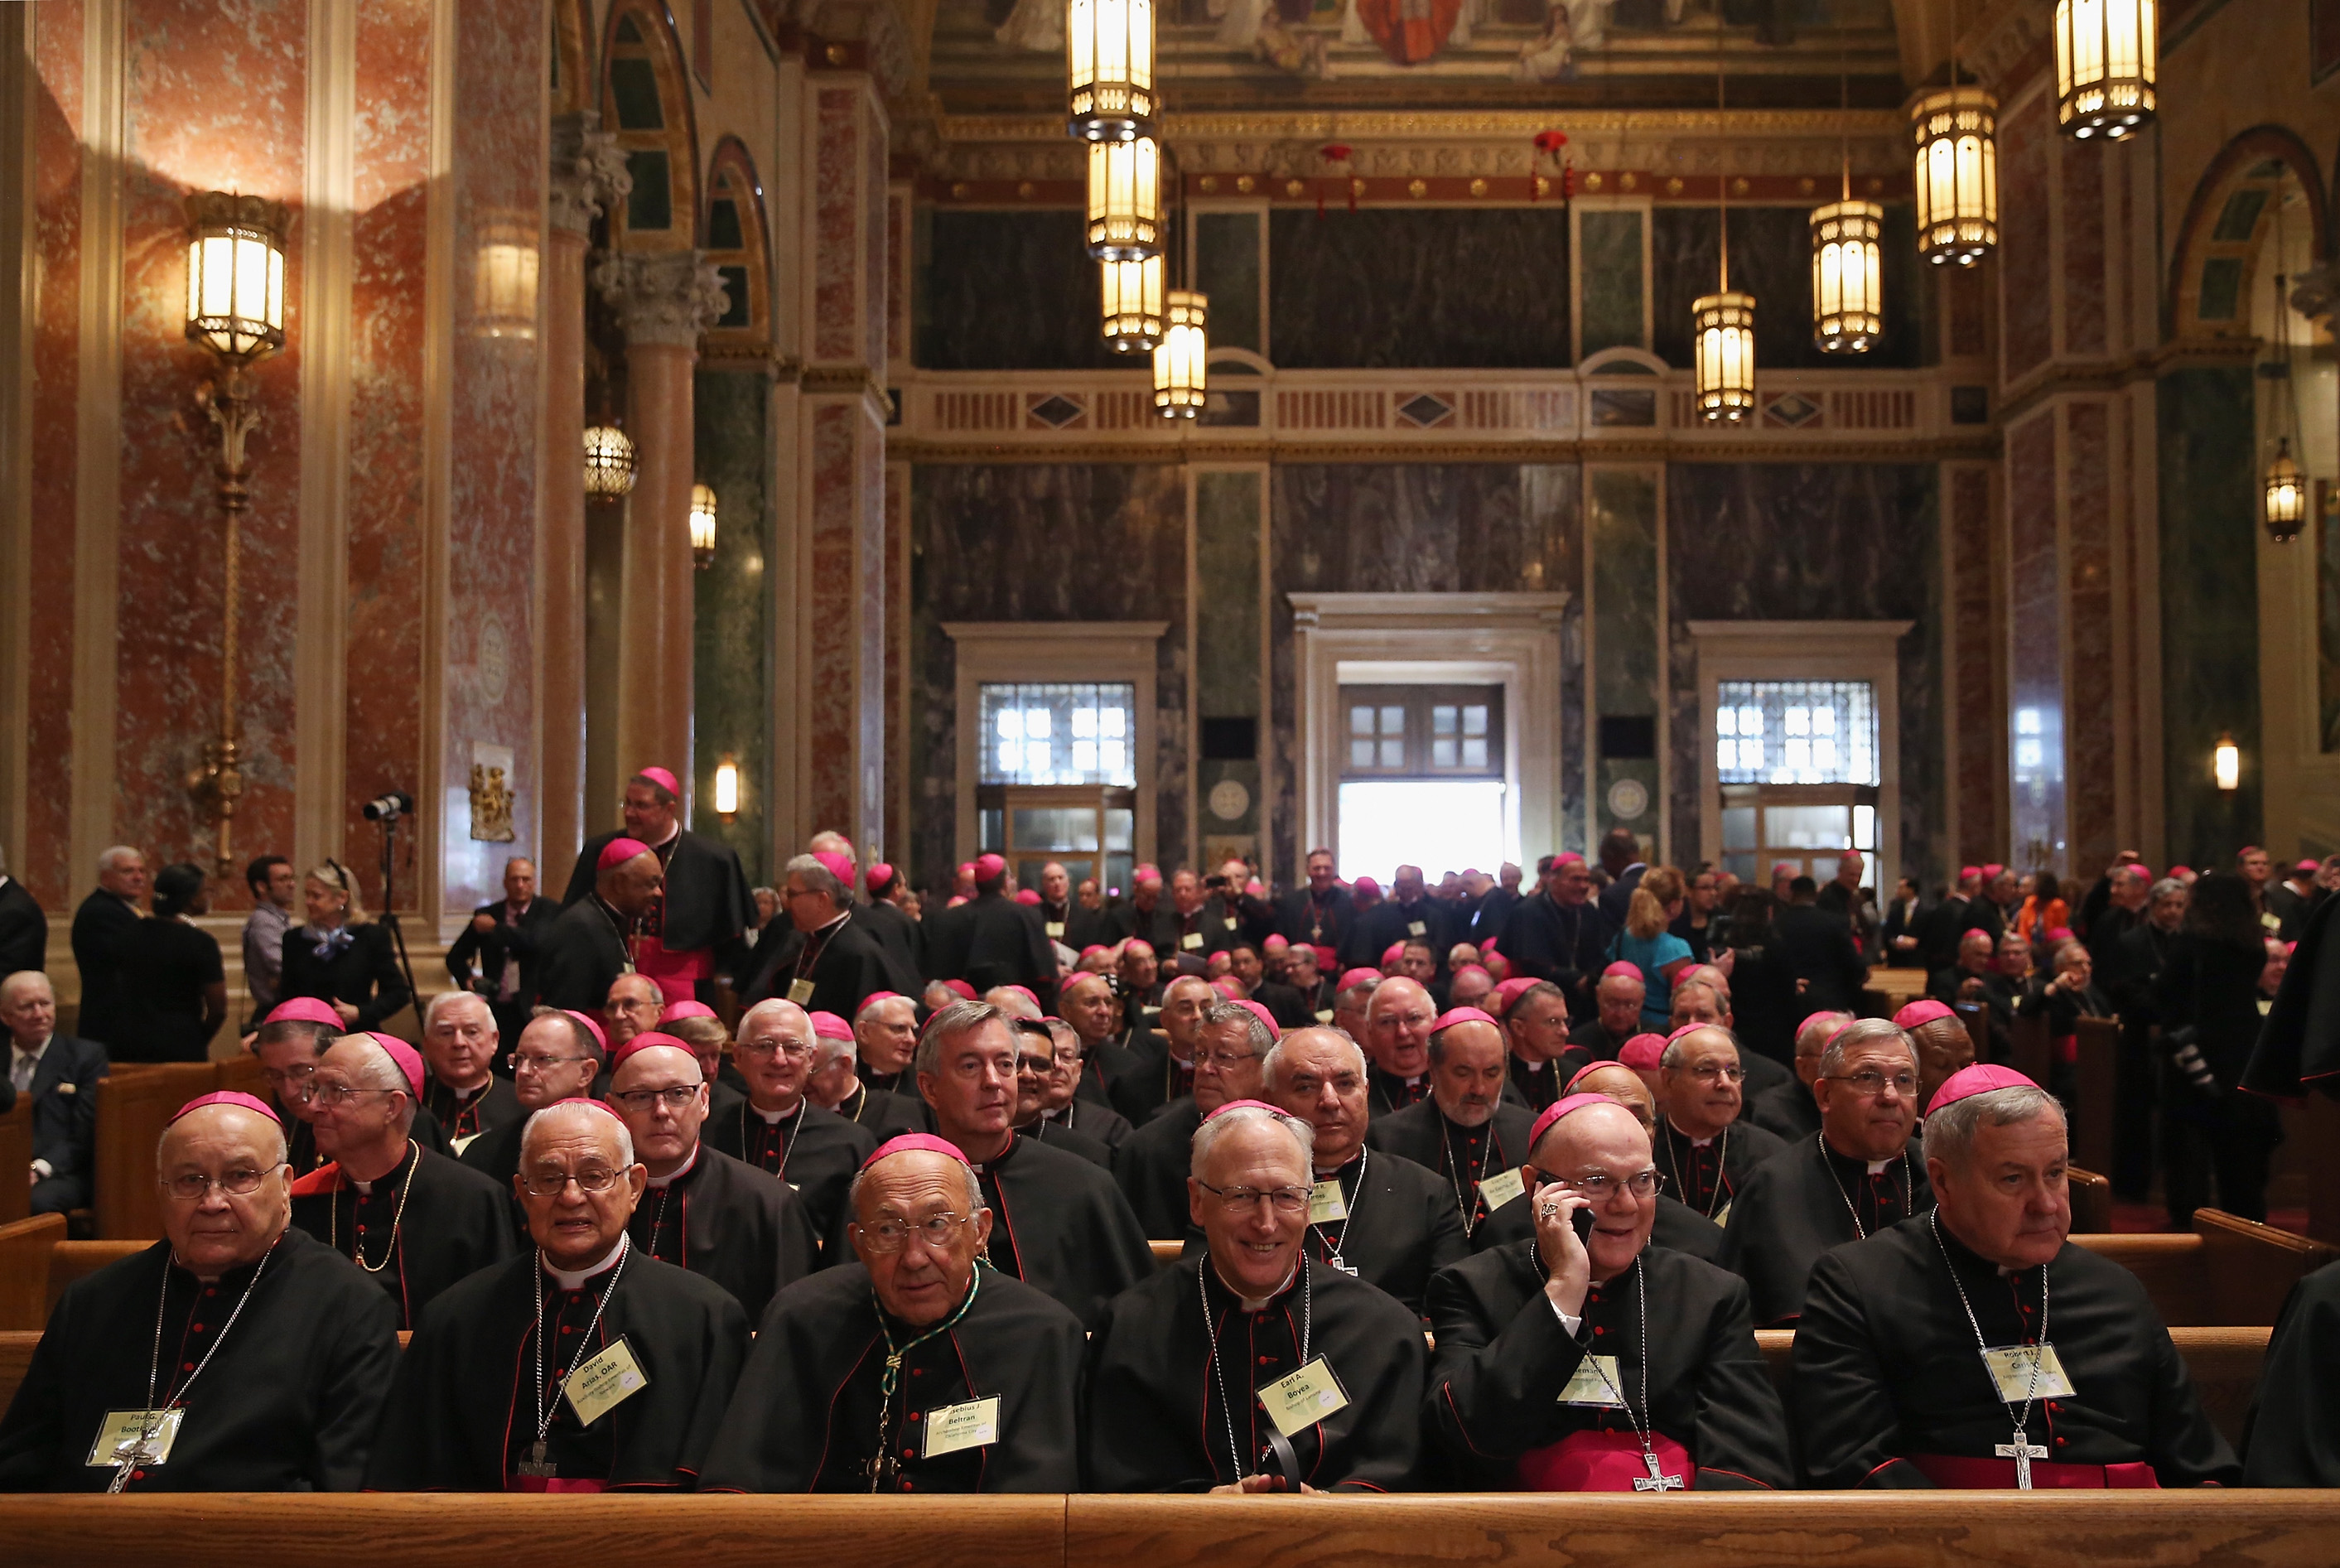 Pope prays for victims of clergy abuse during service with bishops